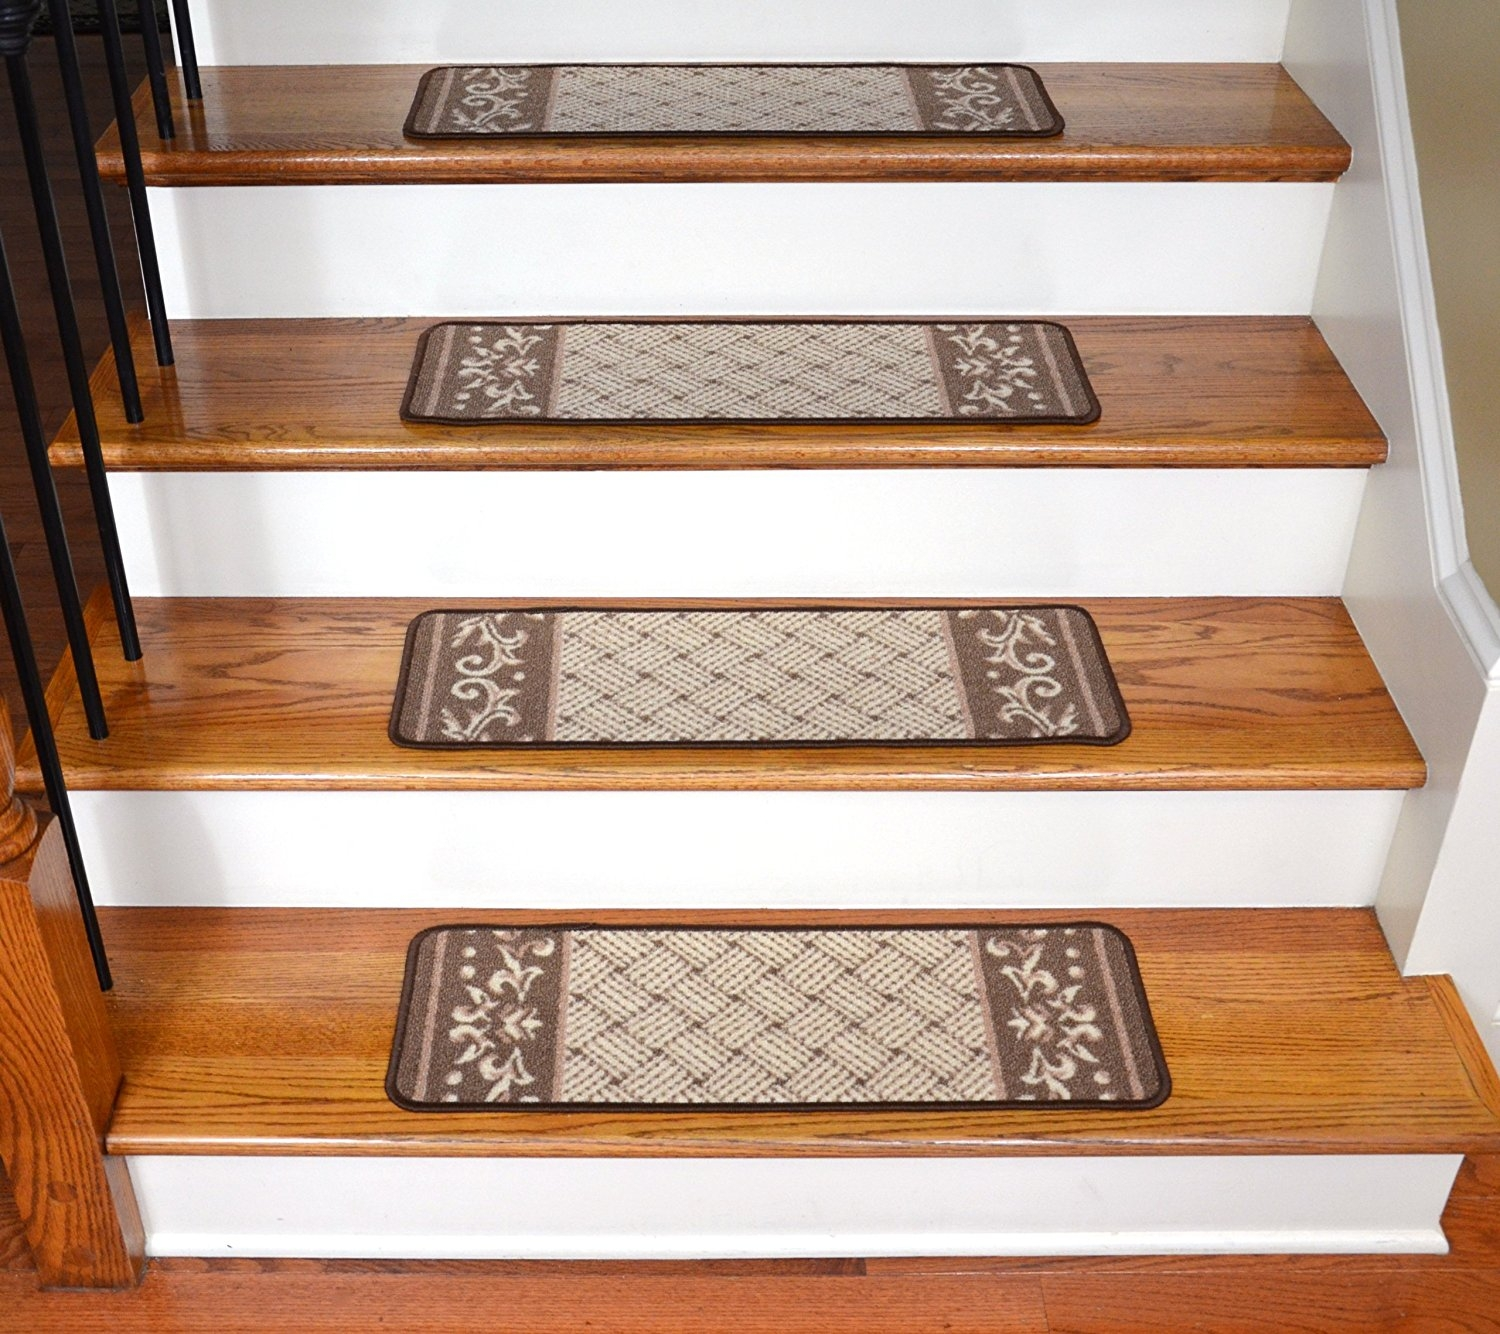 Amazon Carpet Stair Treads Caramel Scroll Border Pertaining To Stair Tread Rugs For Carpet (View 2 of 15)